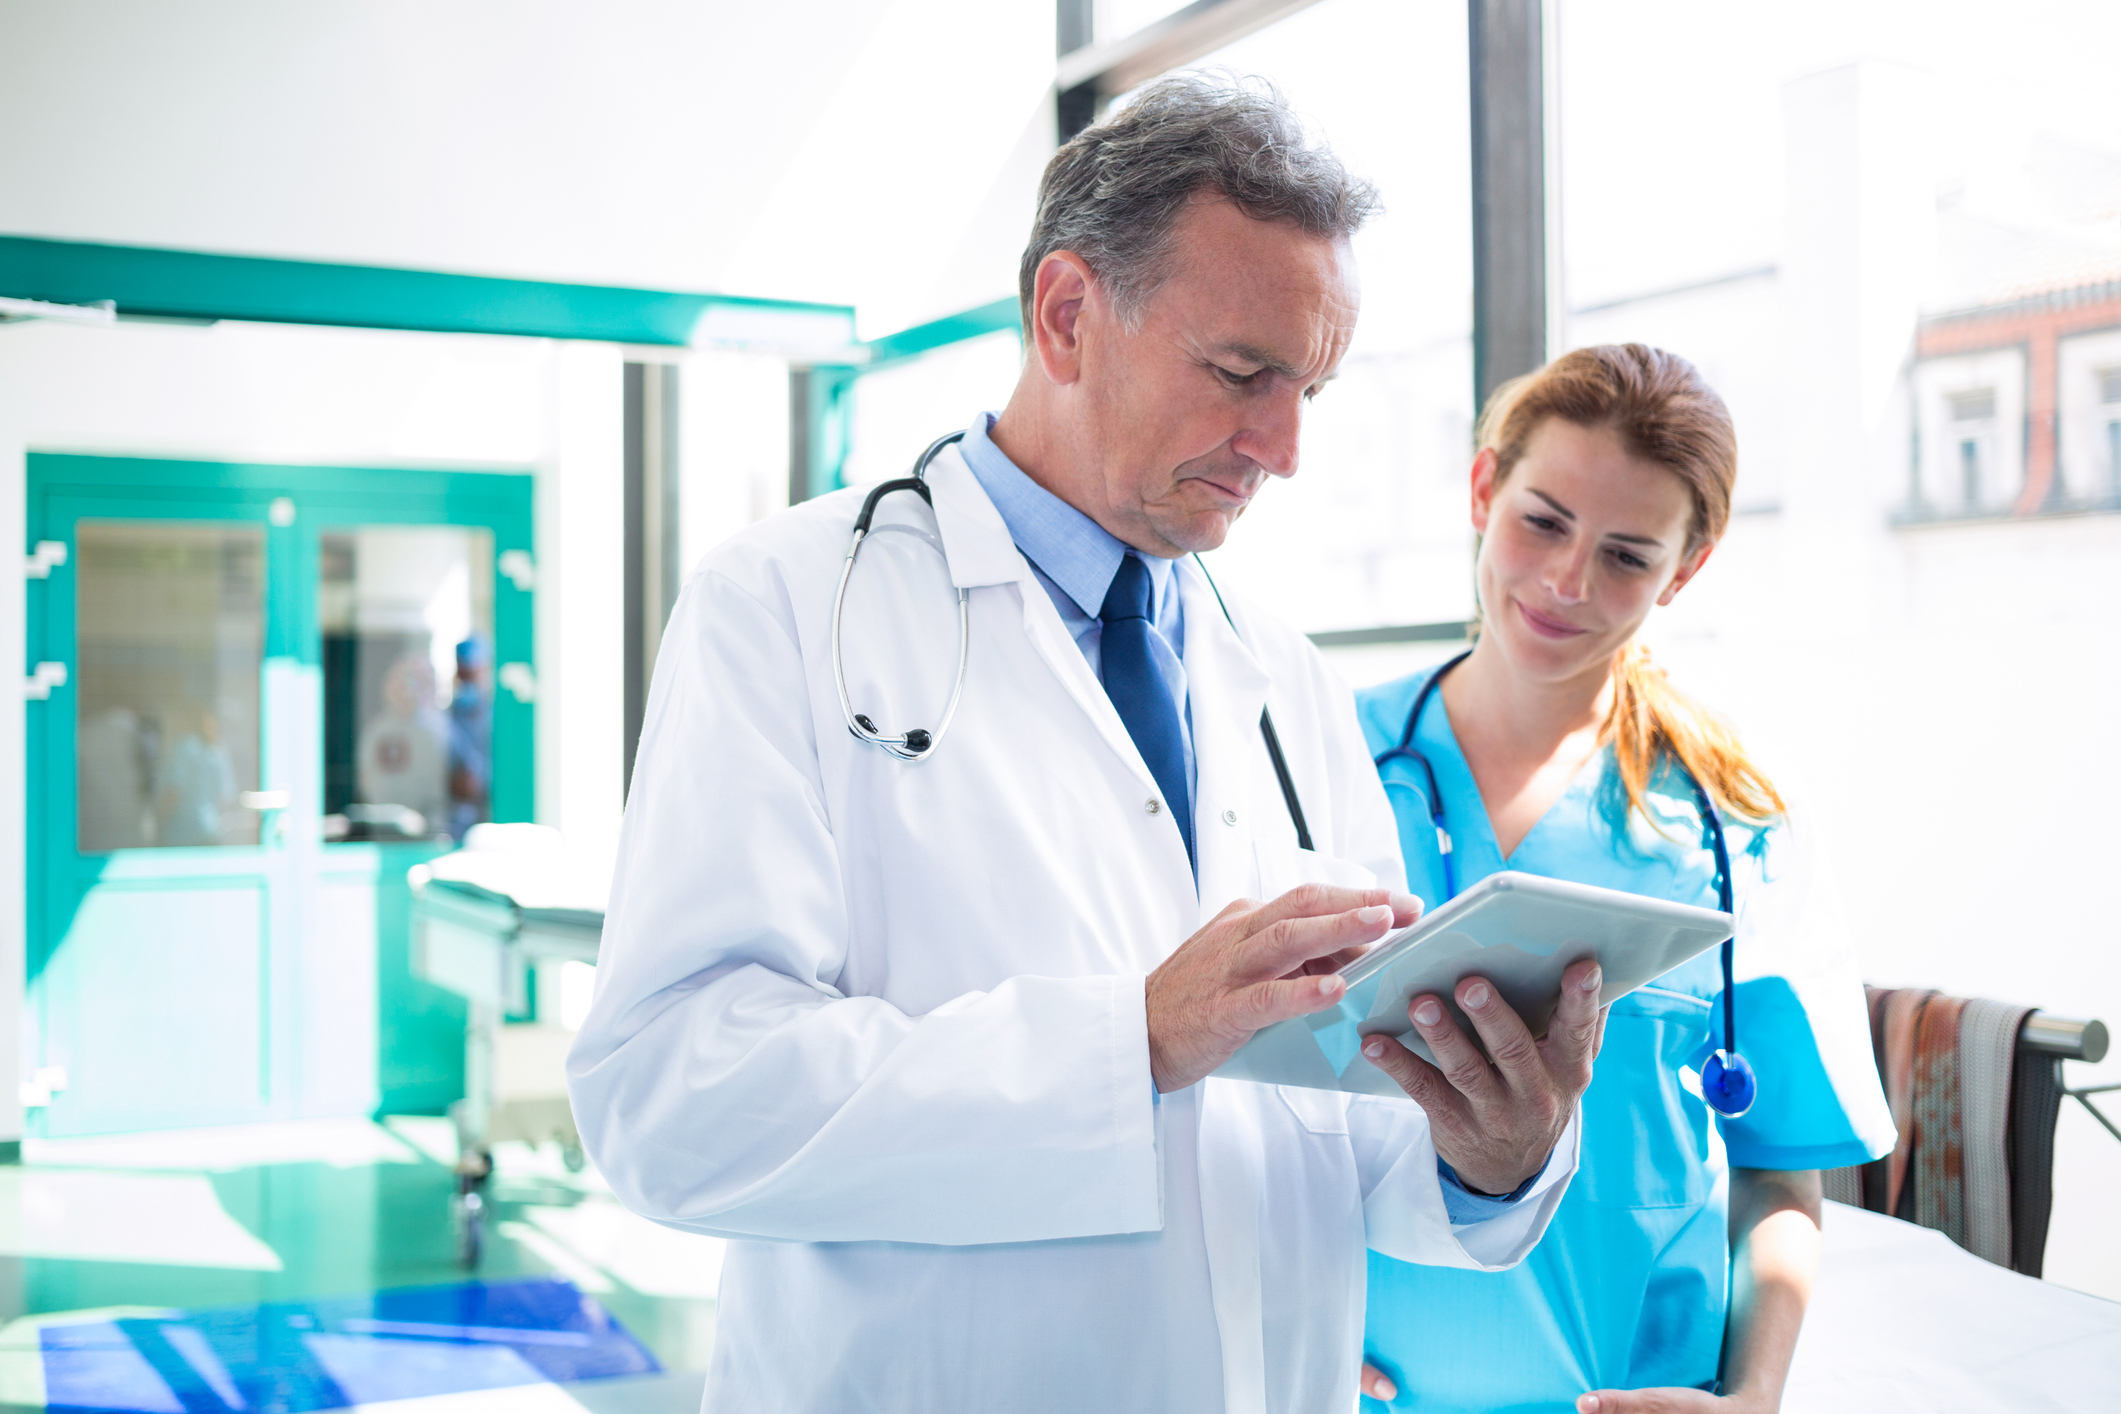 Two physicians in a hospital setting look at a tablet together